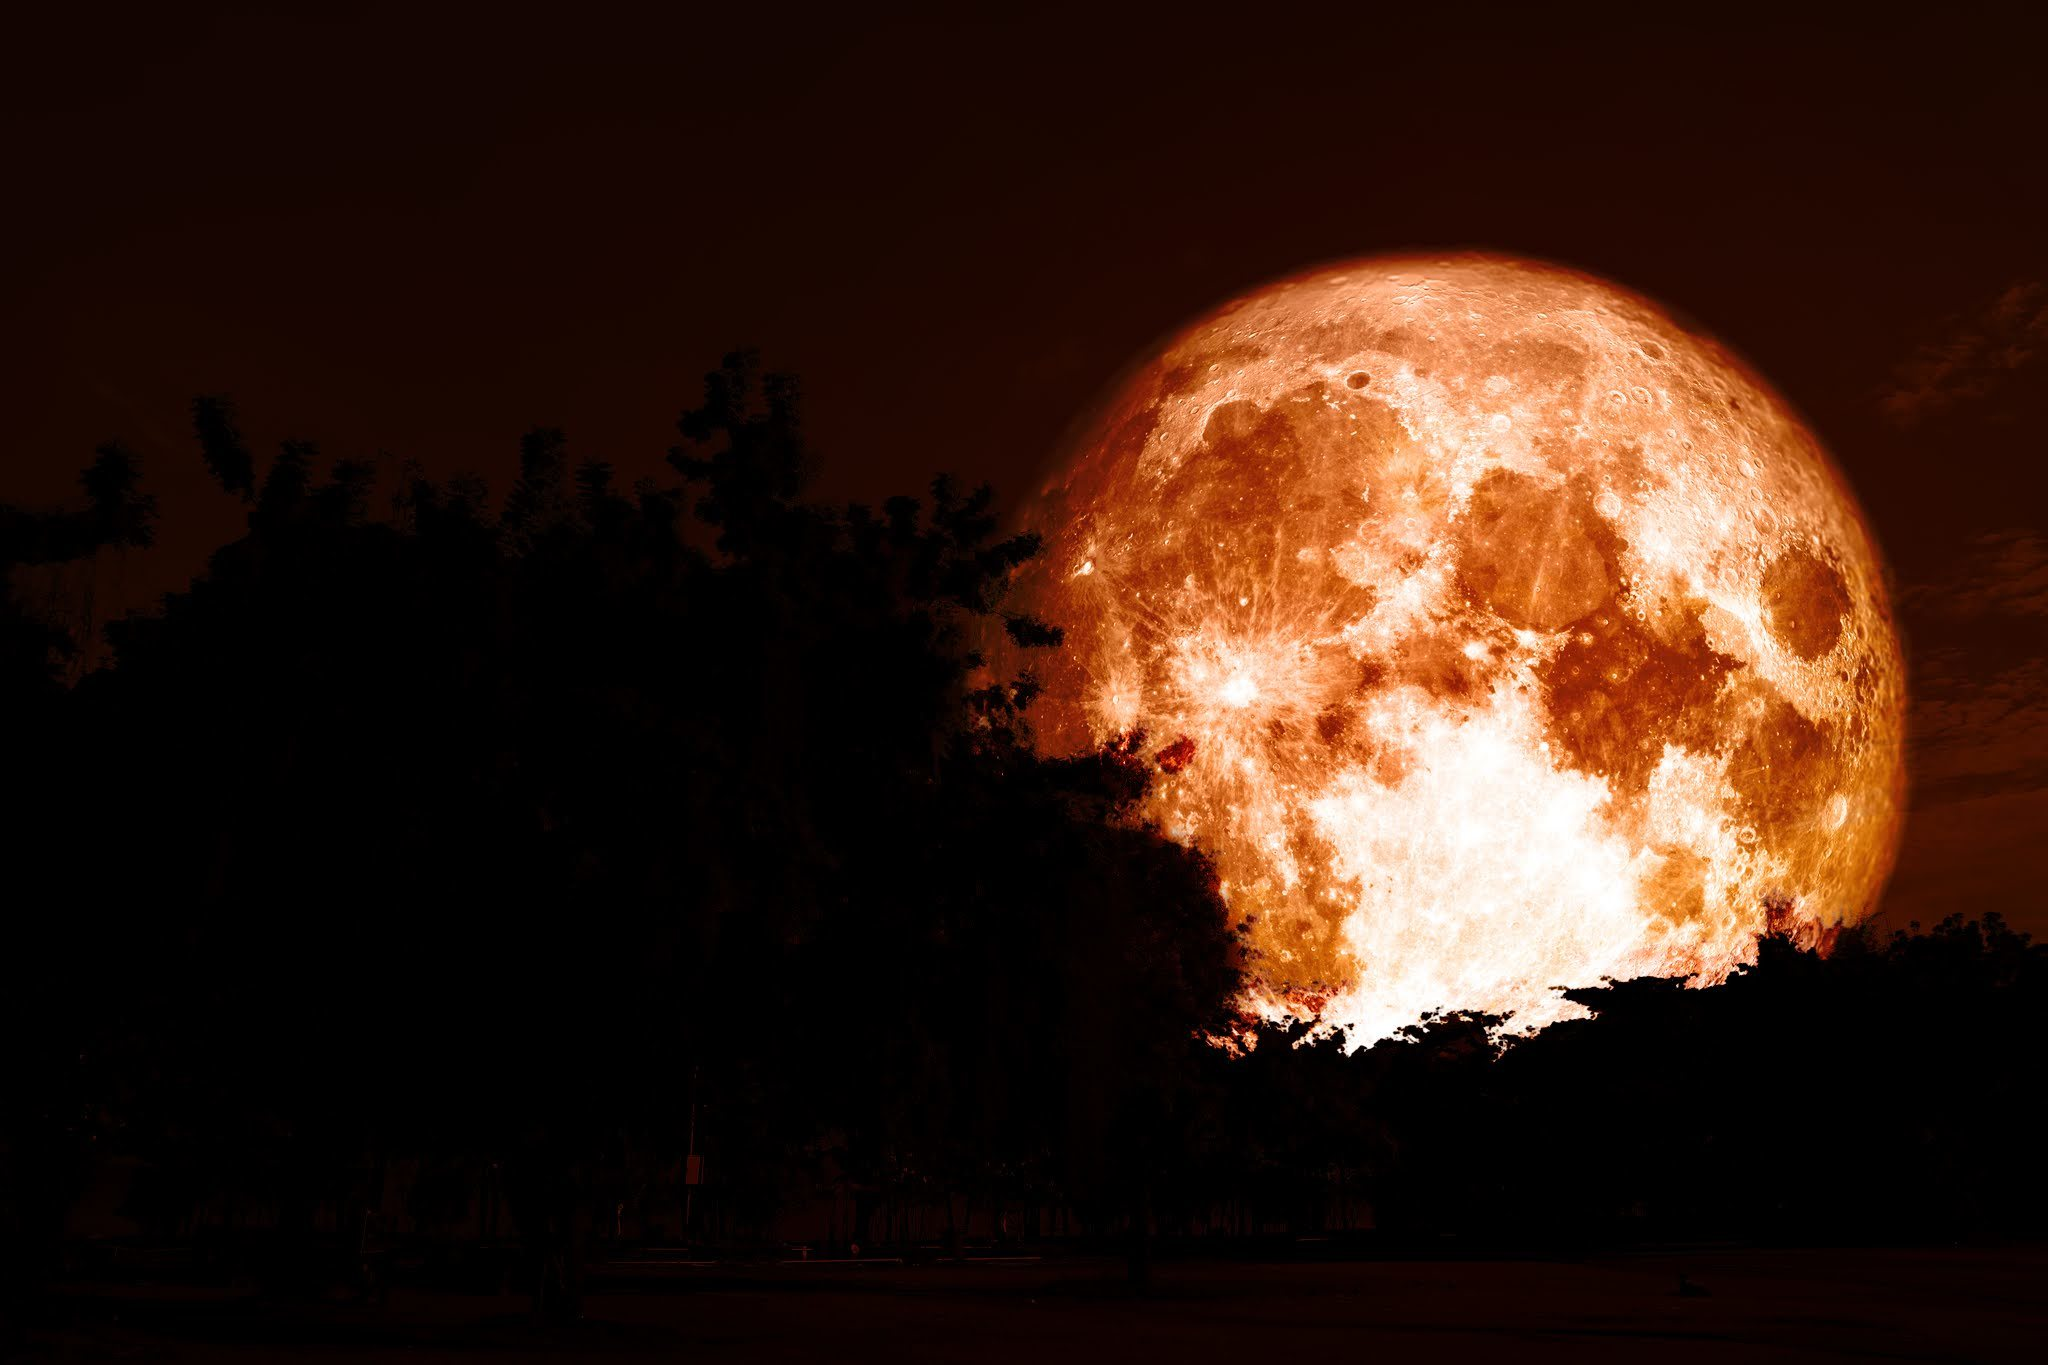 A rare Hunter's Blue Moon is making an appearance this Halloween